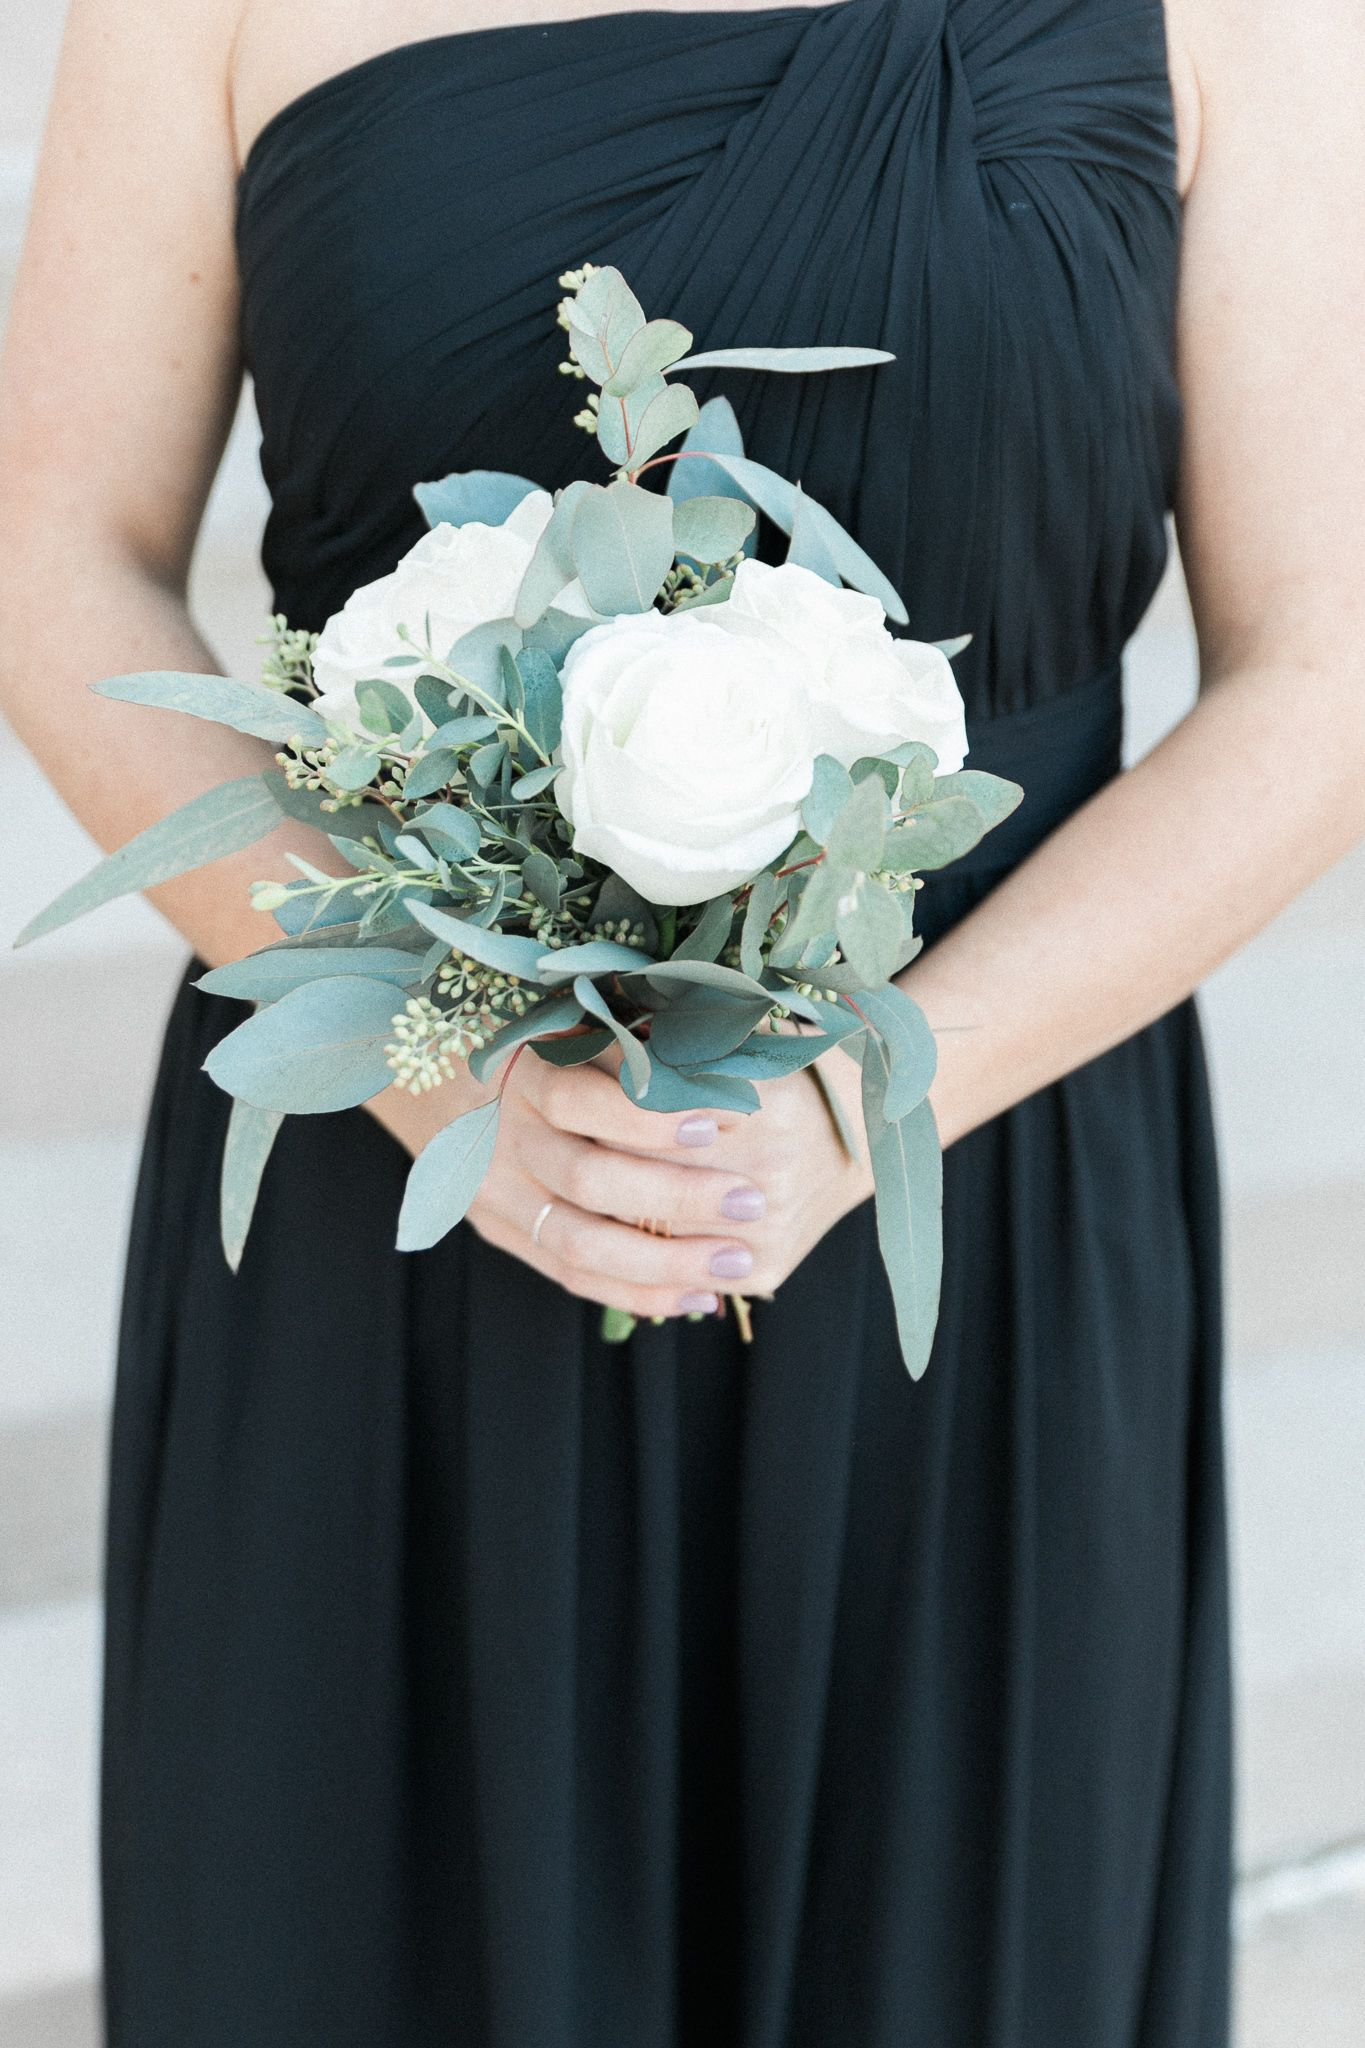 White roses and eucalyptus bridesmaid bouquet. (Photo by Sarah Wesche of Wesche Photography) #bridesmaidbouquets